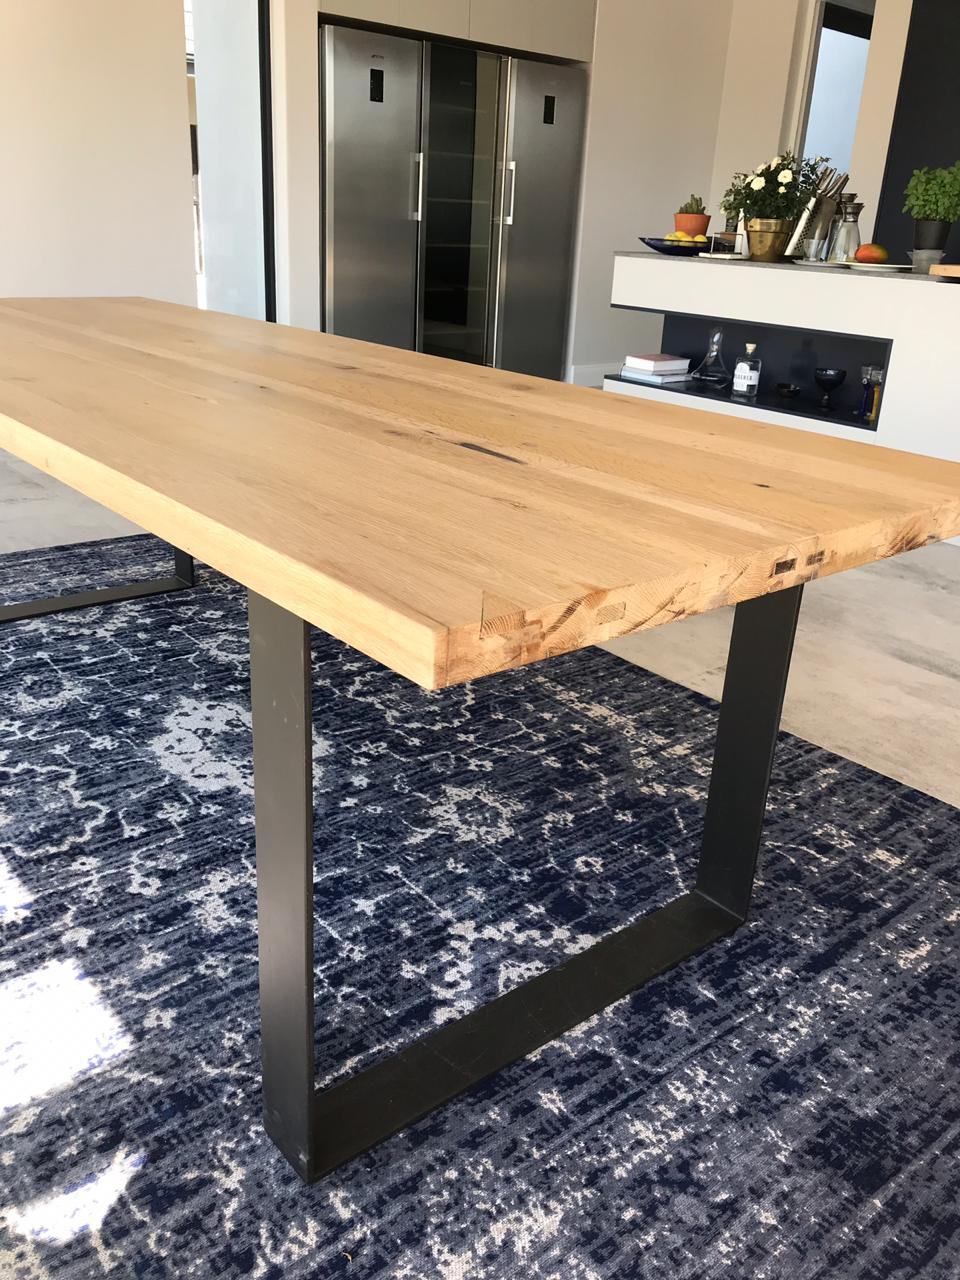 KWV oak table on steel legs